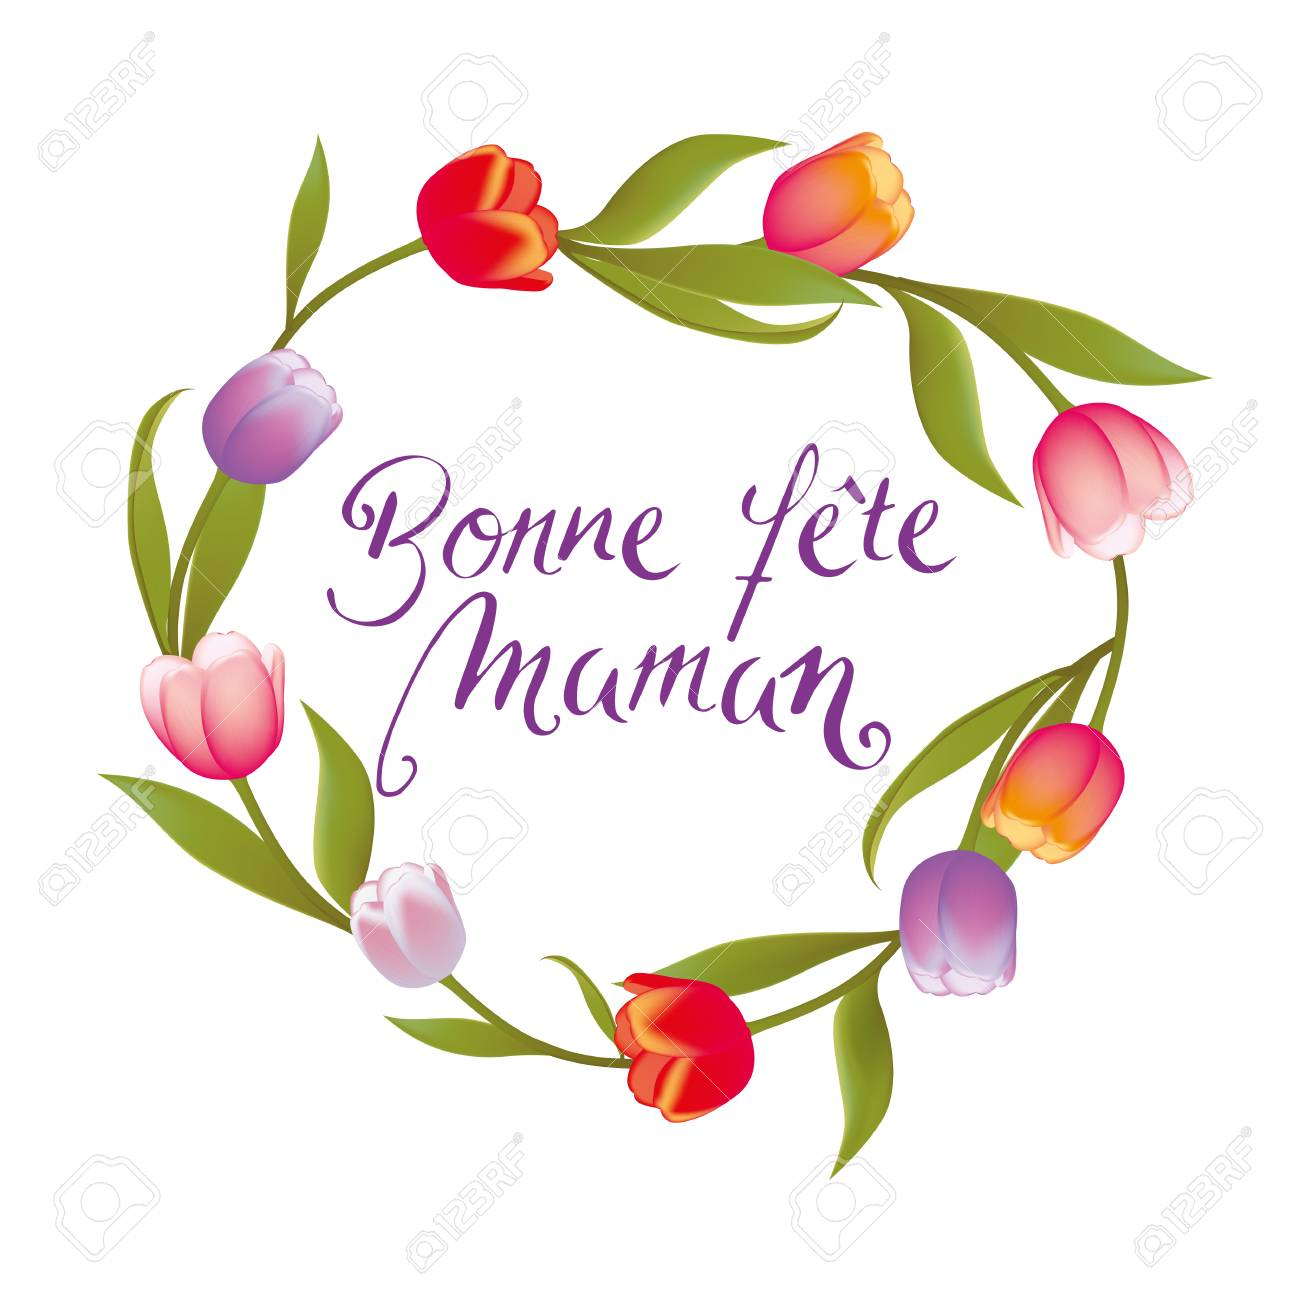 French Handwritten Happy Mothers Day vector background - 96283837